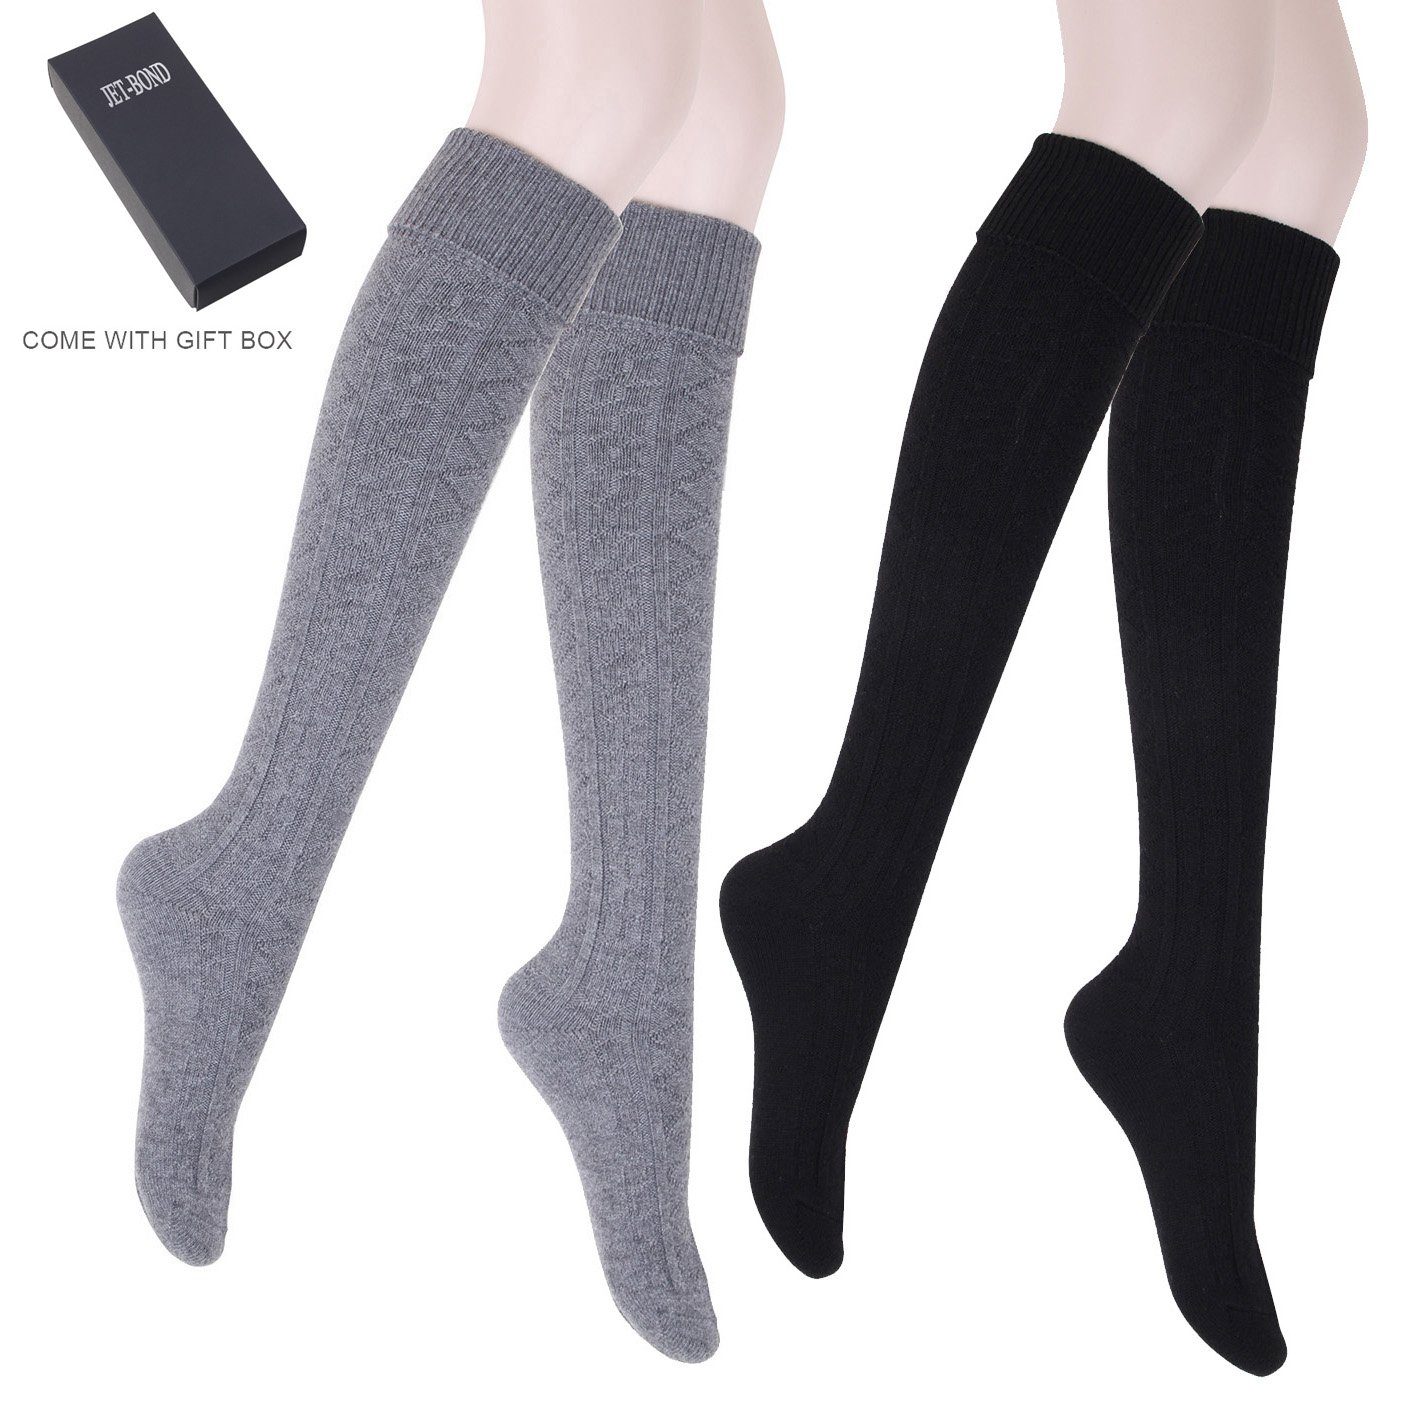 JET-BOND Thick Wool Woollen Cashmere Thigh High Knee Socks Warm Stockings Knit Sweater Thickening Leg Warmers FS03 (Thick Pack of 2)